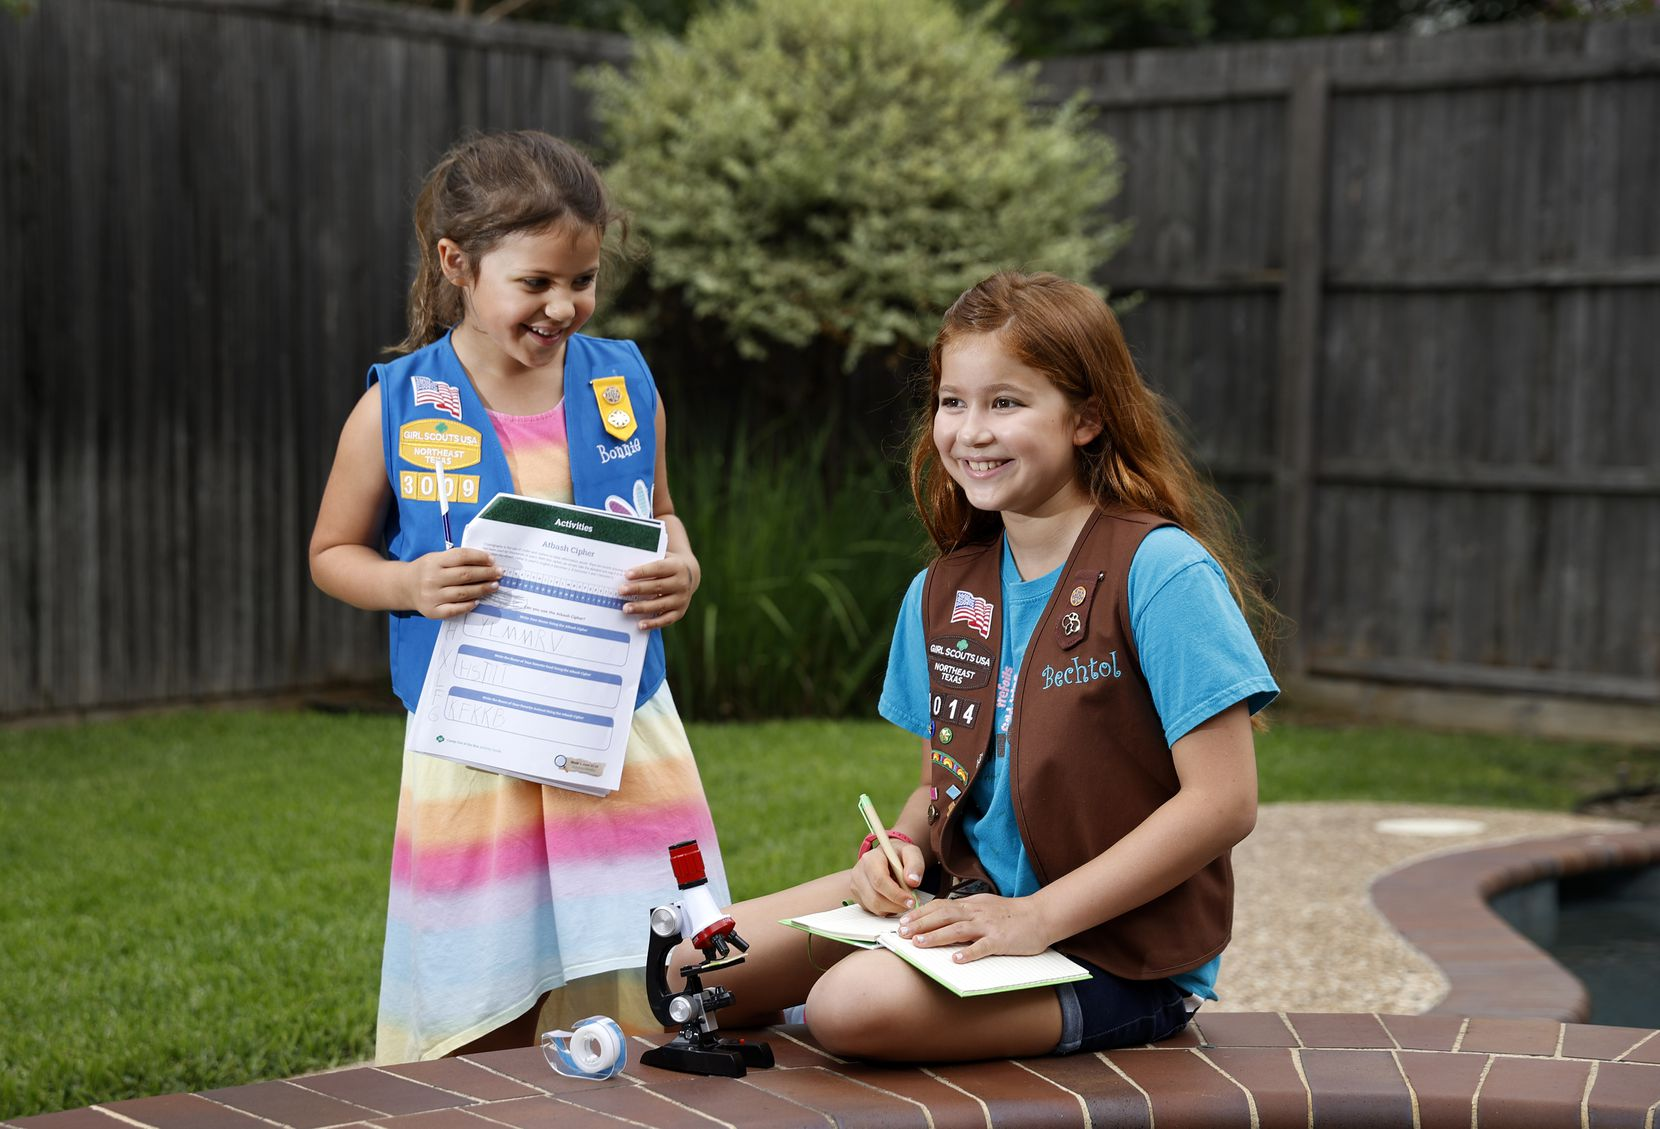 Daisy Scout Bonnie Garcia (left), 6, of Troop 3009 and her sister, Brownie Scout Bechtol Garcia, 9, of Troop 8014 pose for a photo in the backyard of their Dallas home. They are taking part in the Girl Scouts of Northeast Texas' Camp Out of the Box, which helps girls stay involved in their communities while learning STEM during the coronavirus pandemic. (Tom Fox/The Dallas Morning News)